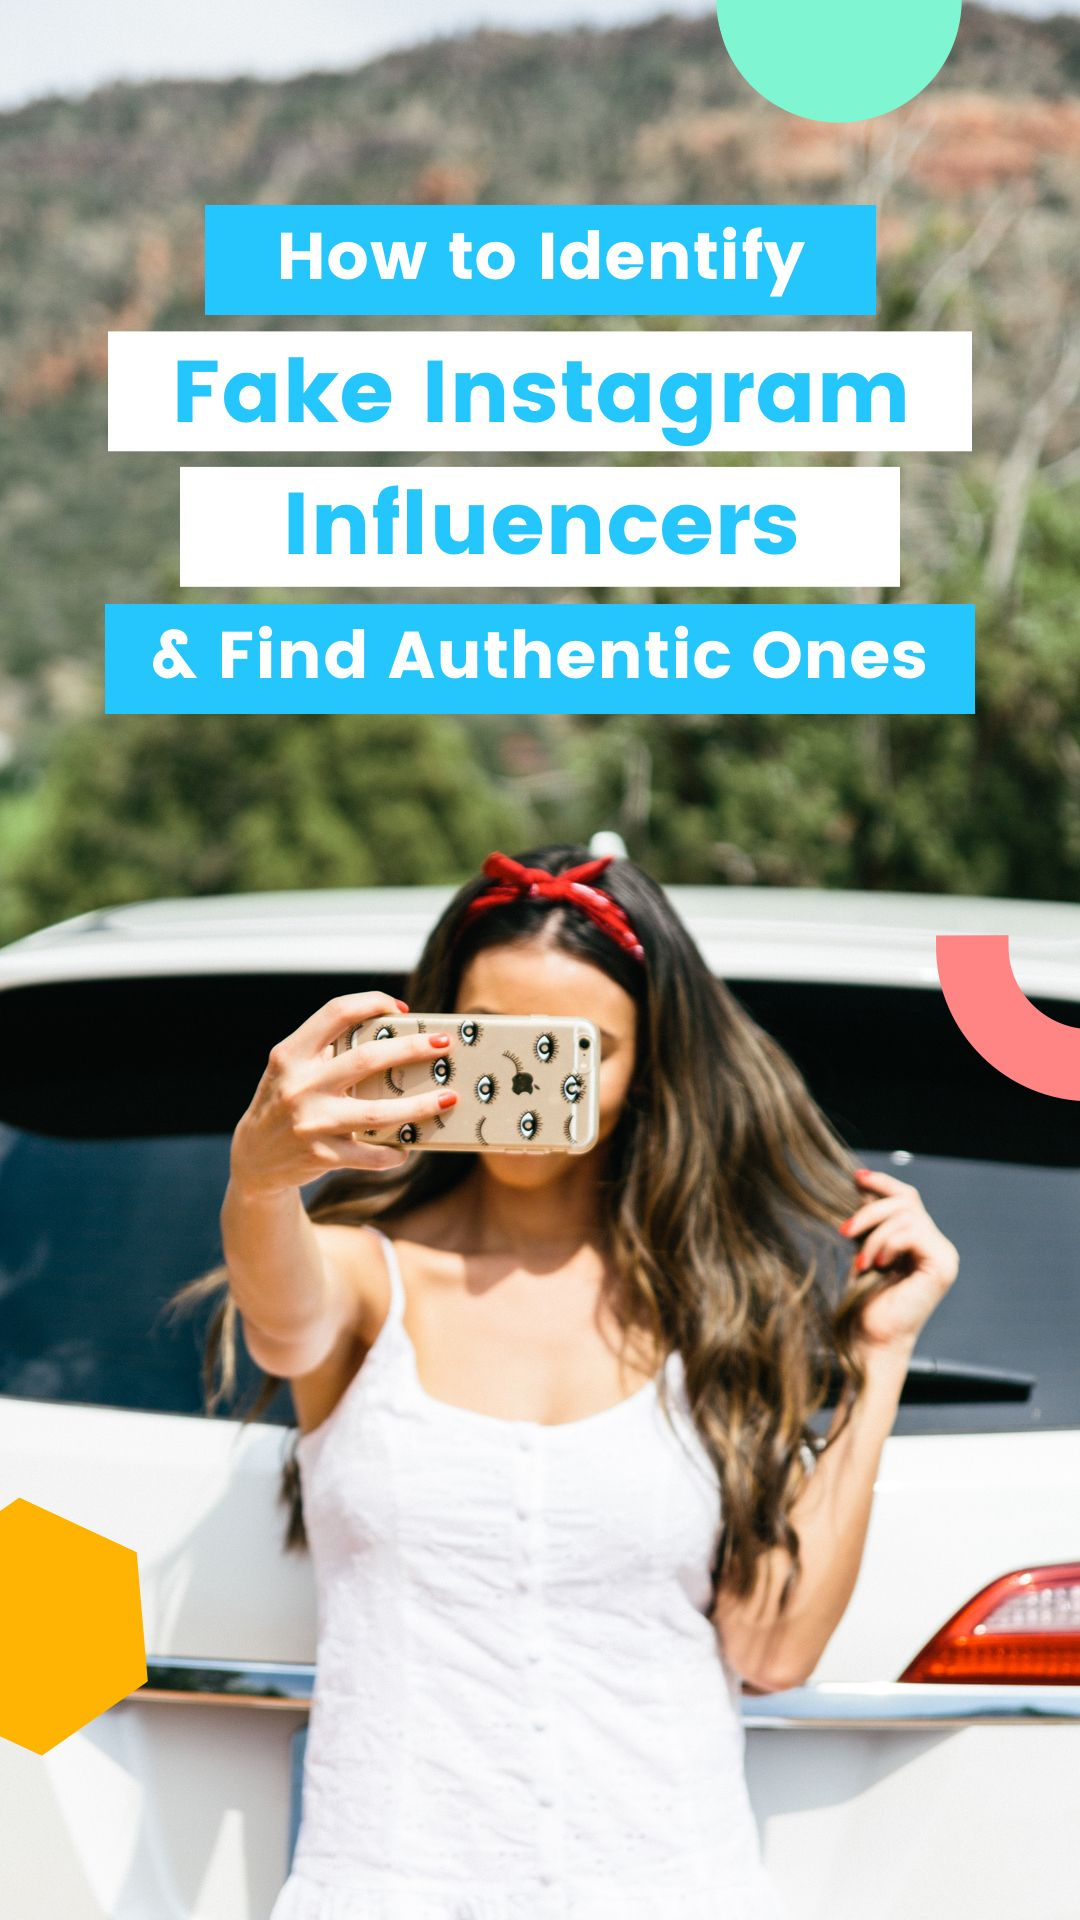 How to Identify Fake Instagram Influencers (and Find